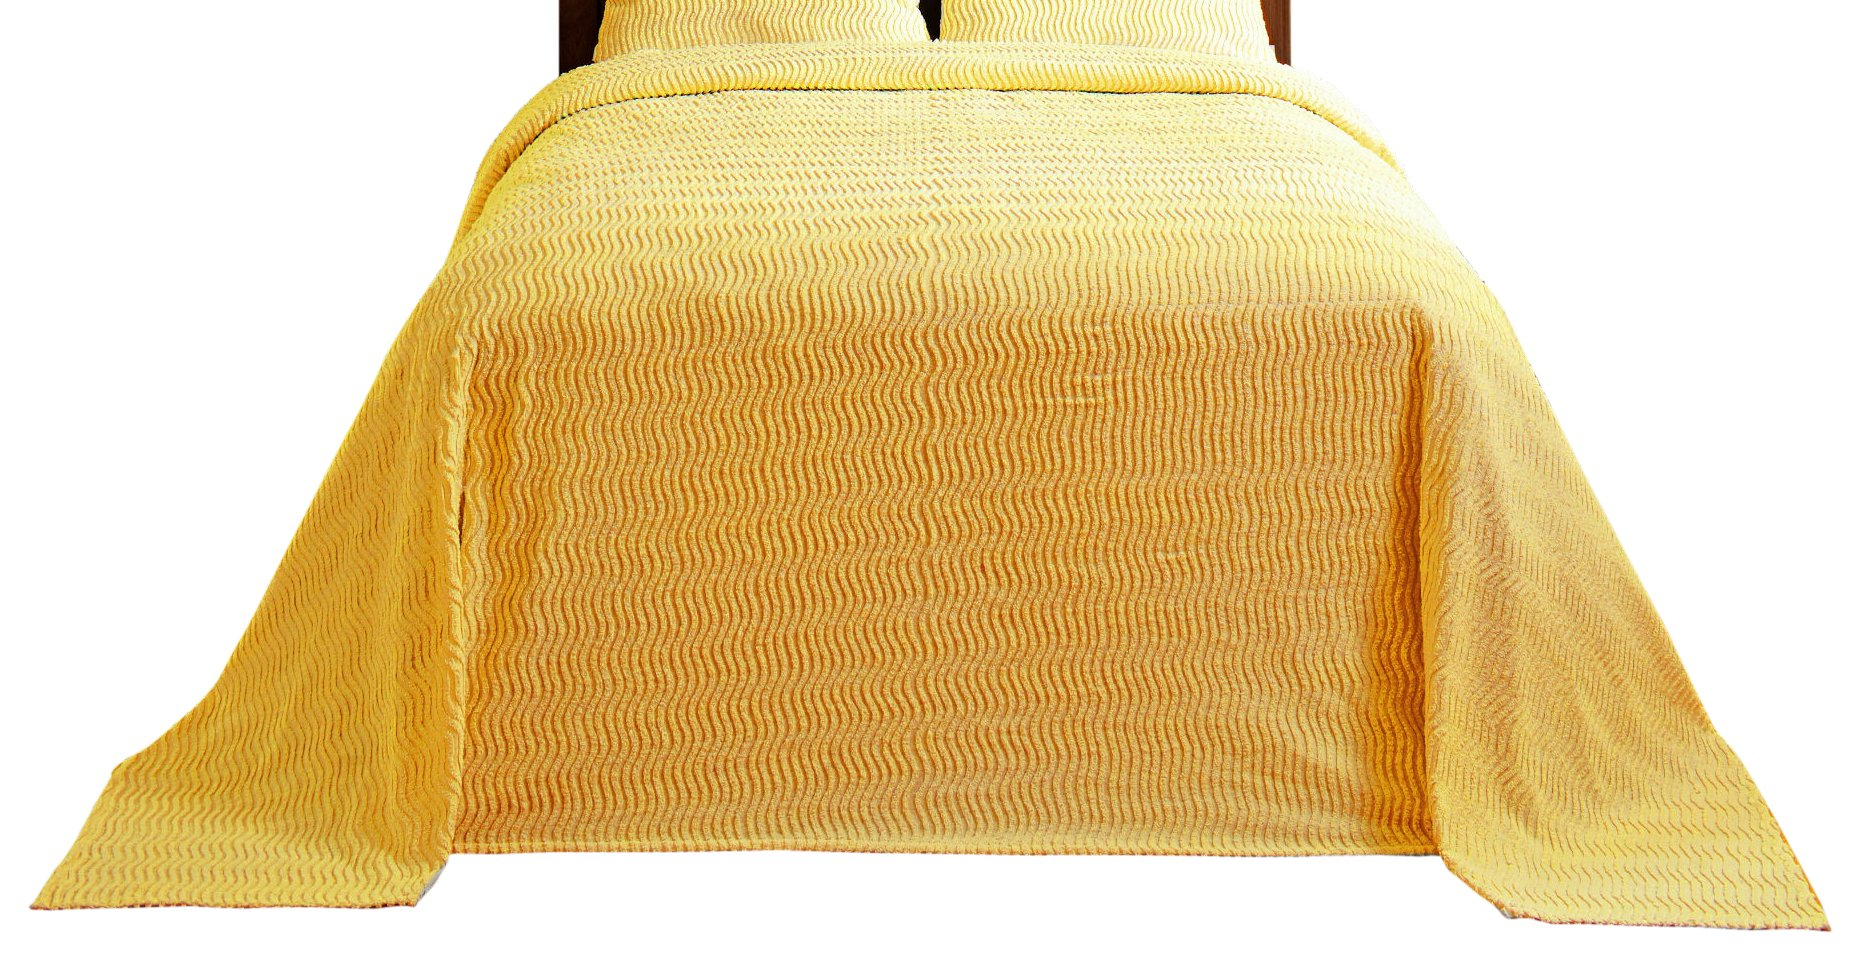 Better Trends / Pan Overseas Natick Chenille Bed Spread 96''X110'' Bedspread, Double, Yellow